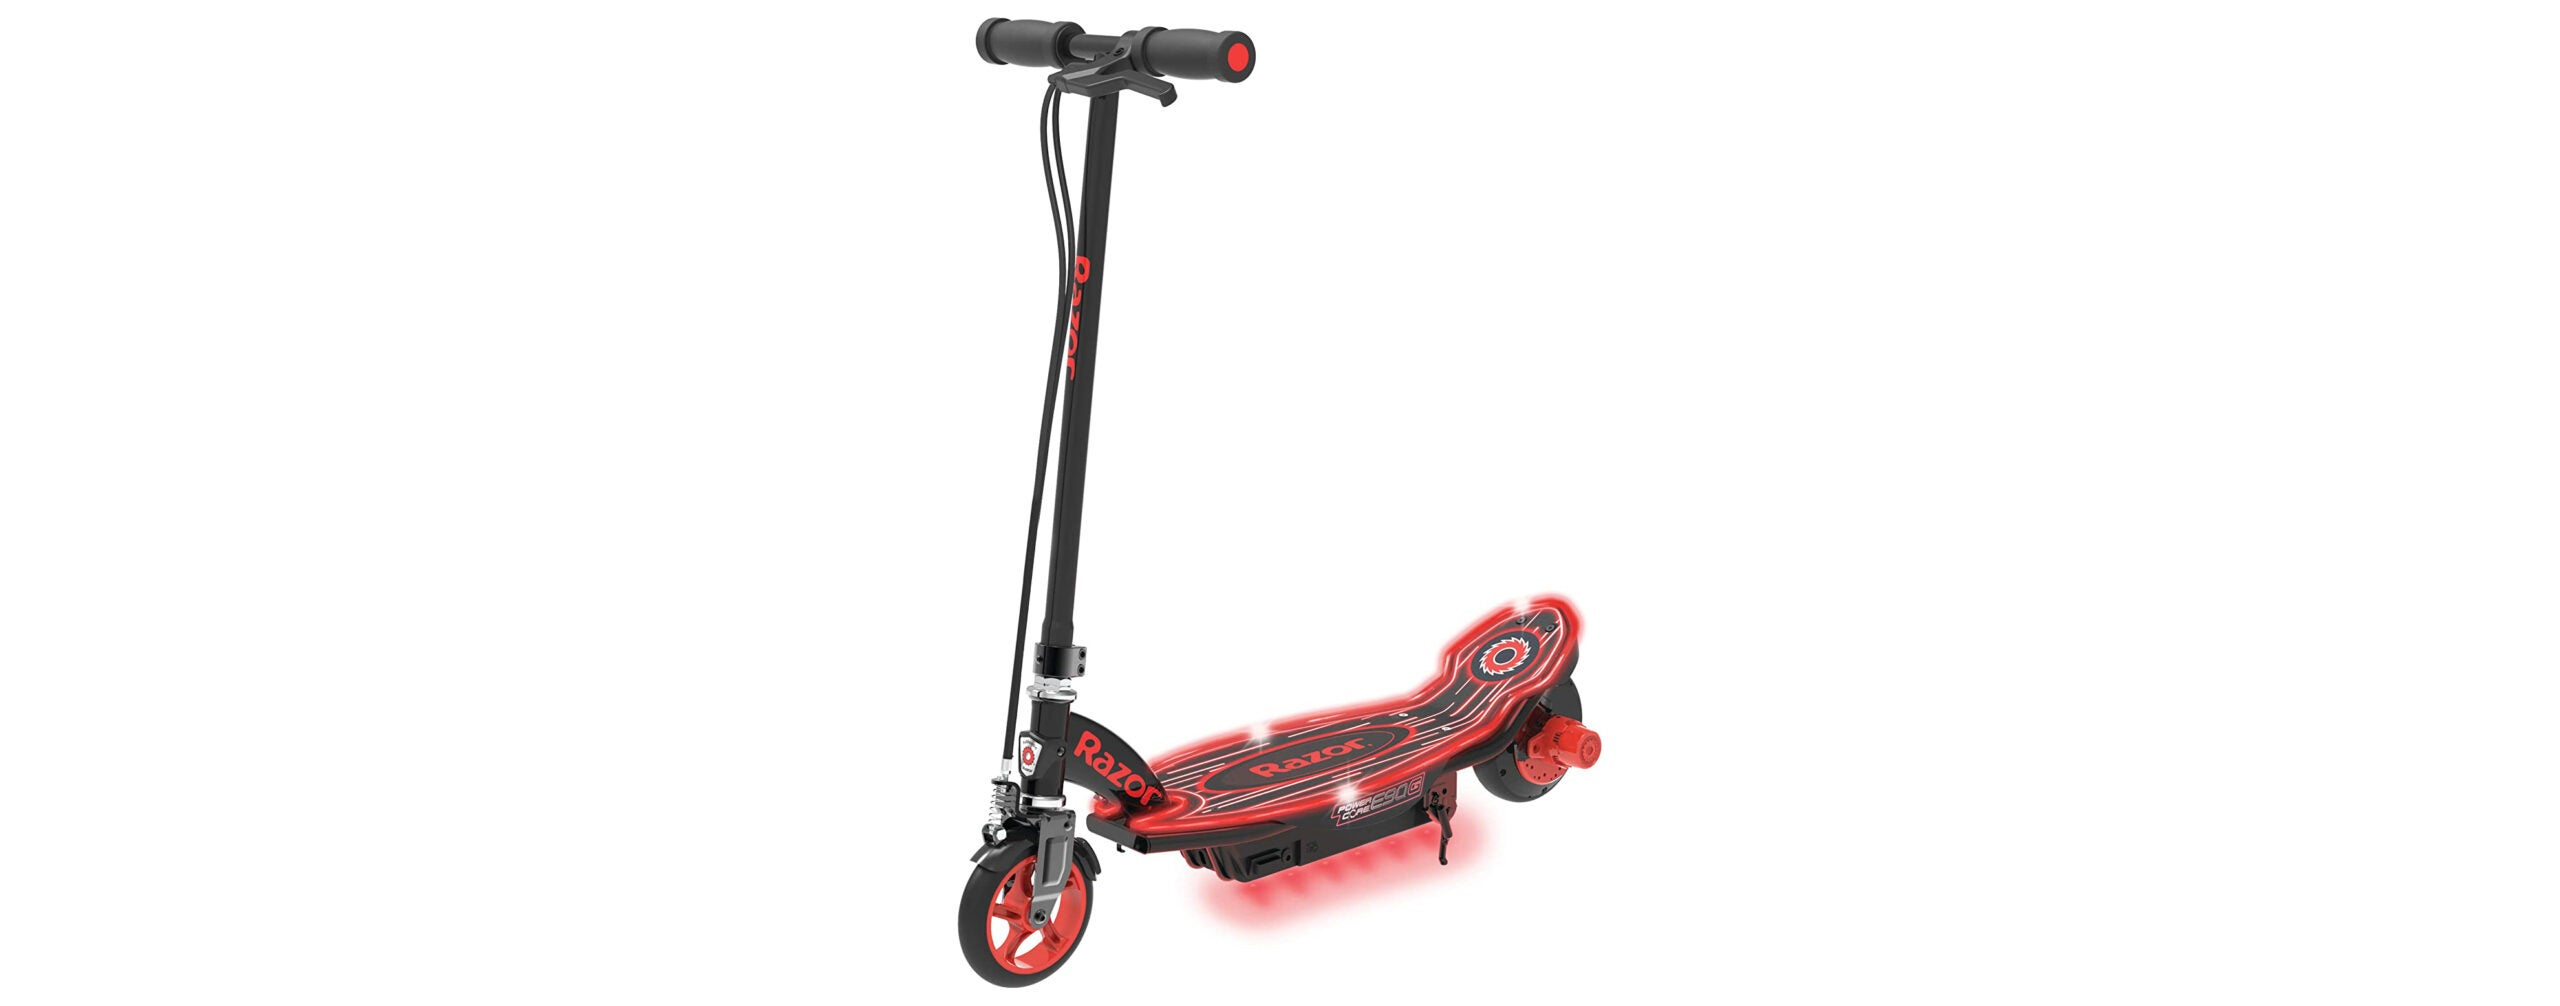 The Best Razor Electric Scooters (Review & Buying Guide) in 2021